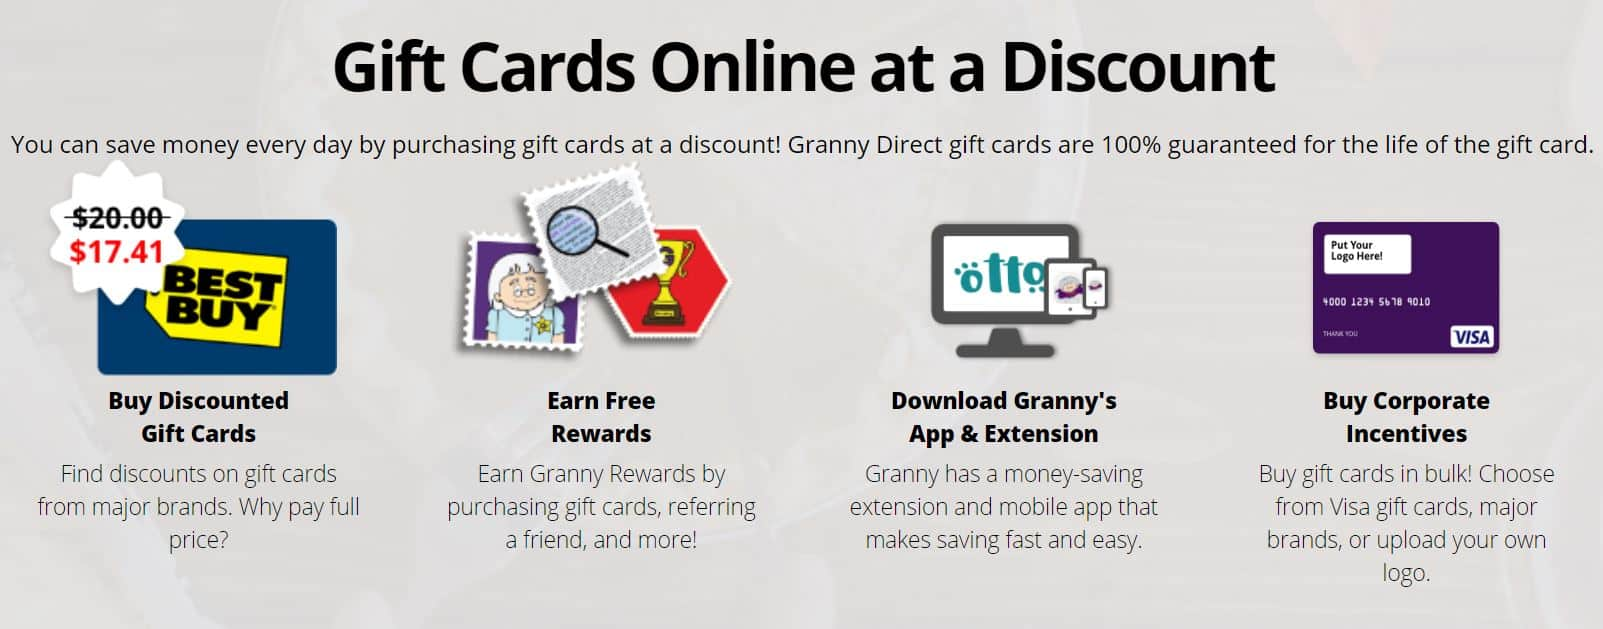 22 clever ways to get free gift cards iliketodabble